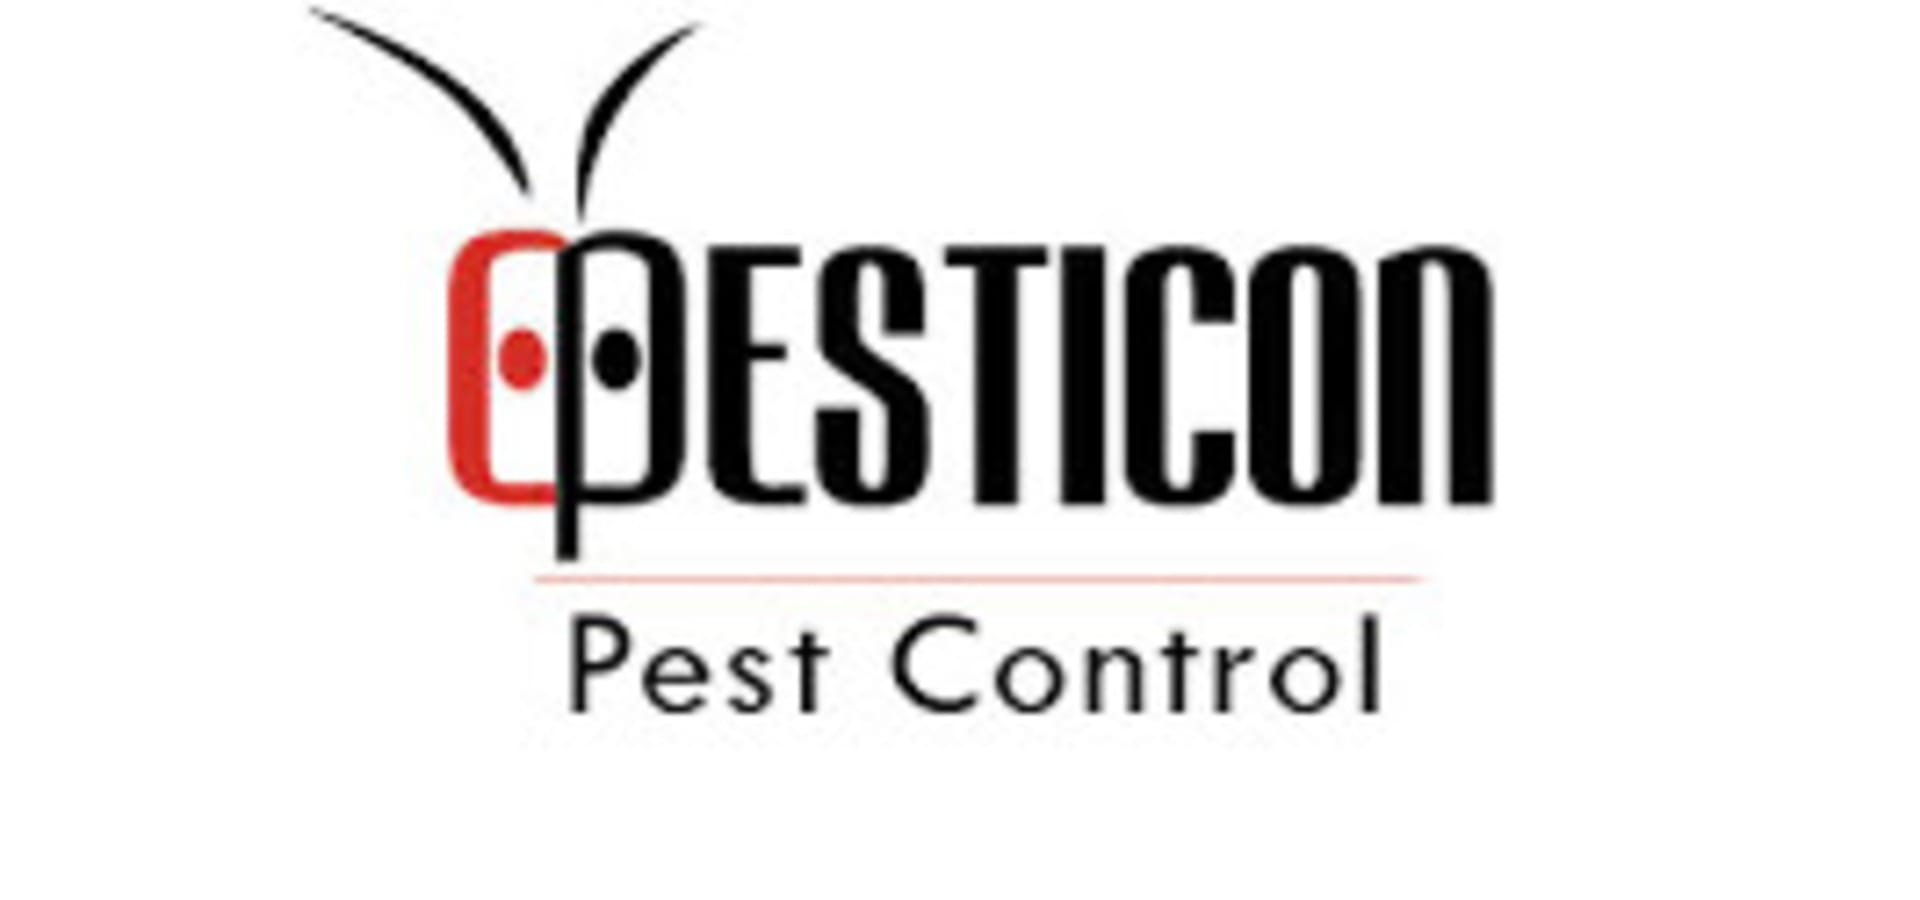 Pesticon Pest Control Toronto